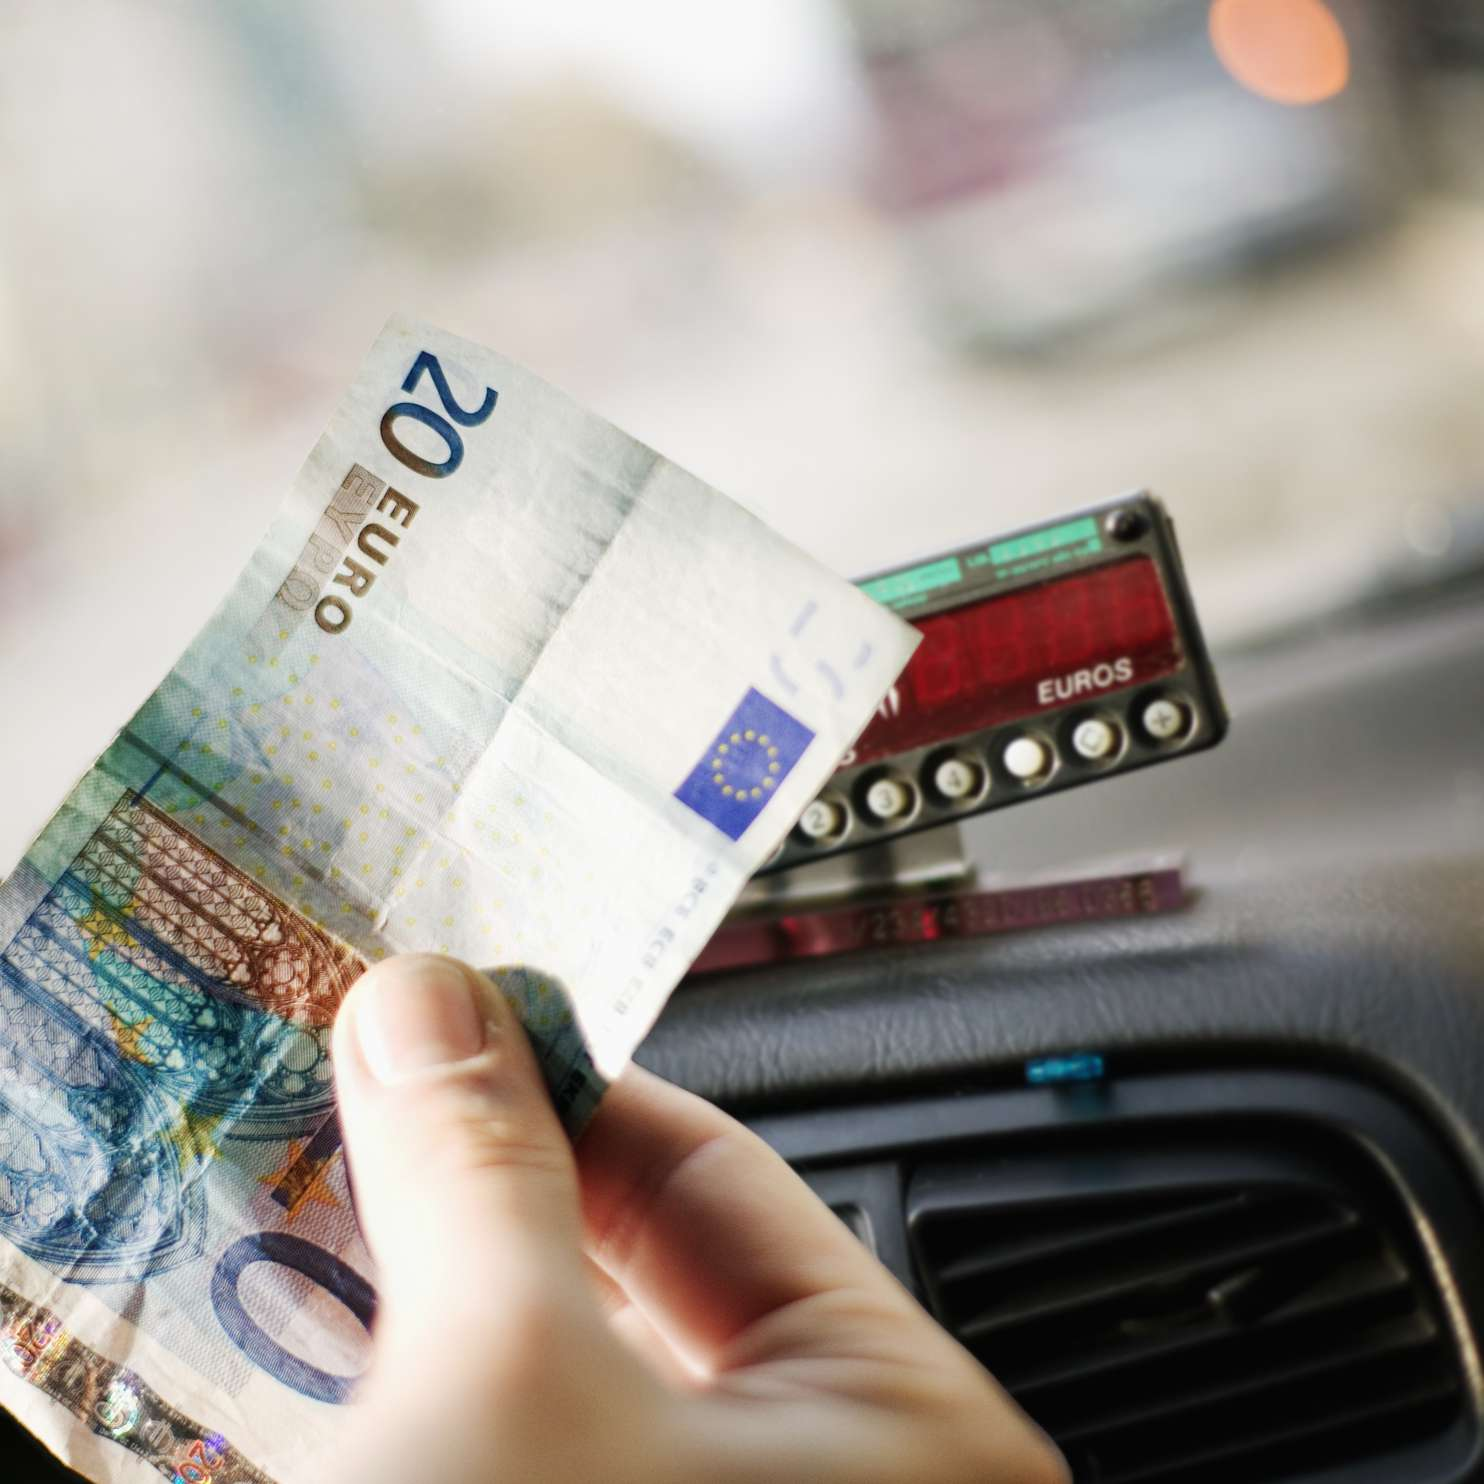 Taxi meter and euros